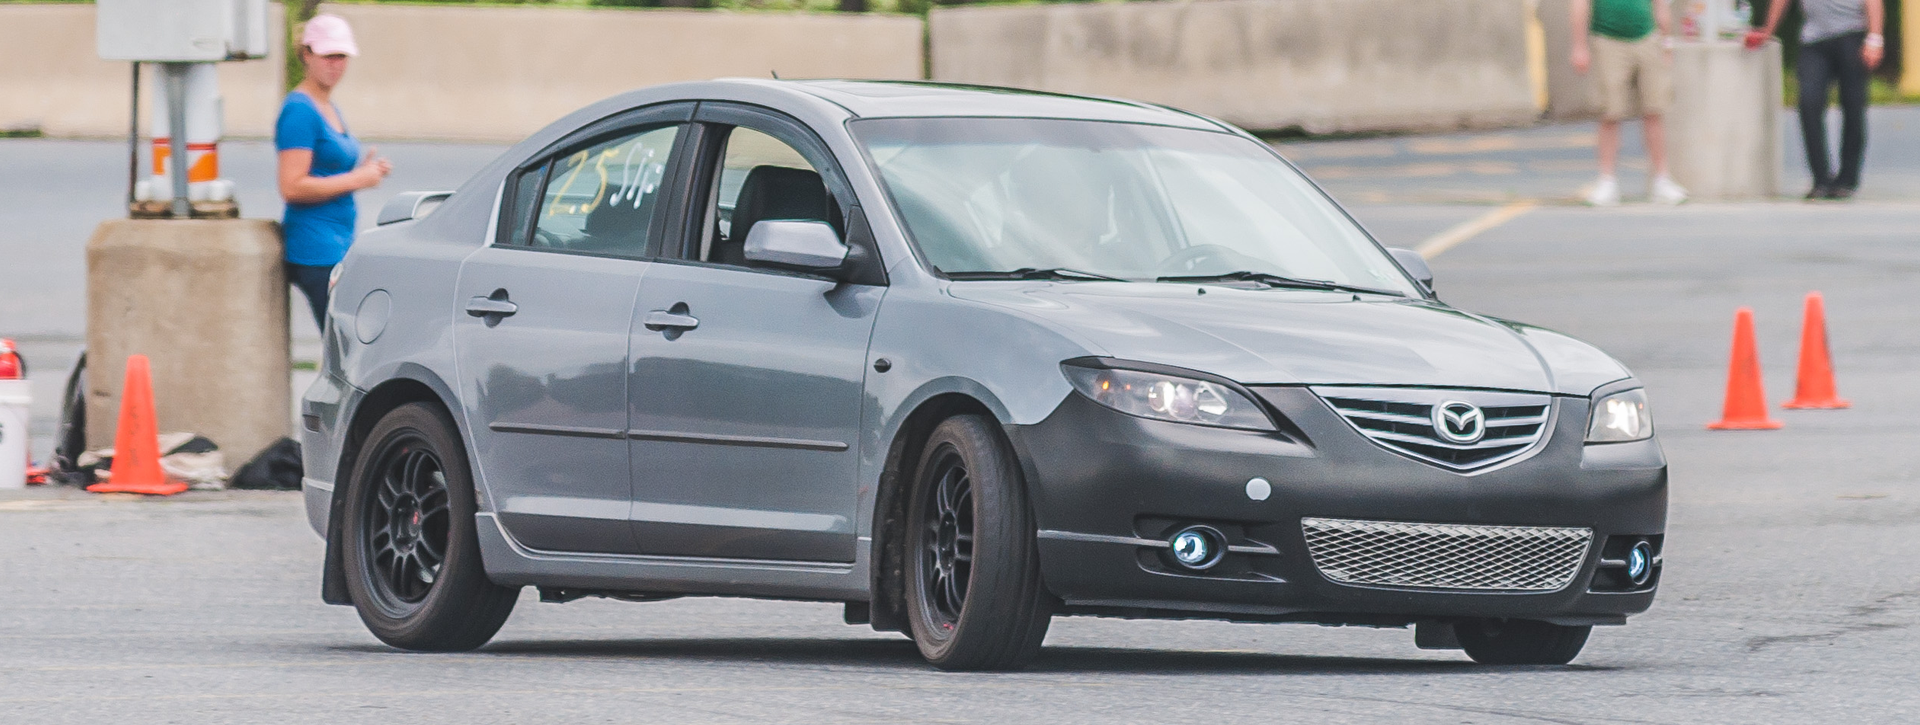 <p>Name: Darian Taggart From: East Earl, PA Runs:Autocross Drives: 2005 Mazda 3 in the STF class Member Since: Early 2016 You may have seen Darian around one of the many AX events from last year but you may not know his background. Darian has spent his life living in Lancaster [&hellip;]</p>